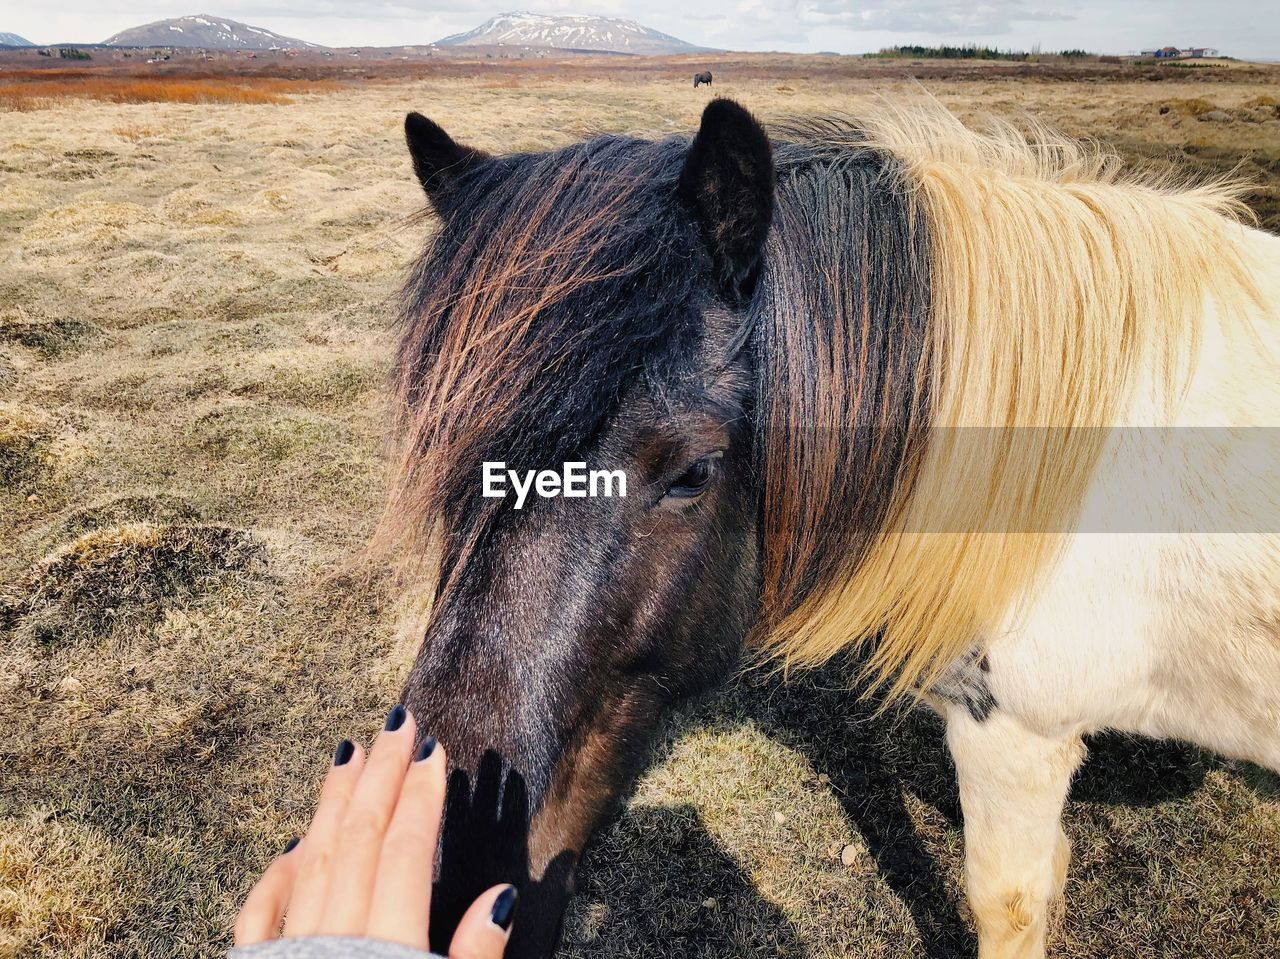 mammal, animal, animal themes, domestic animals, pets, domestic, vertebrate, one animal, horse, human hand, land, animal wildlife, one person, hand, human body part, livestock, field, day, nature, real people, outdoors, animal head, herbivorous, finger